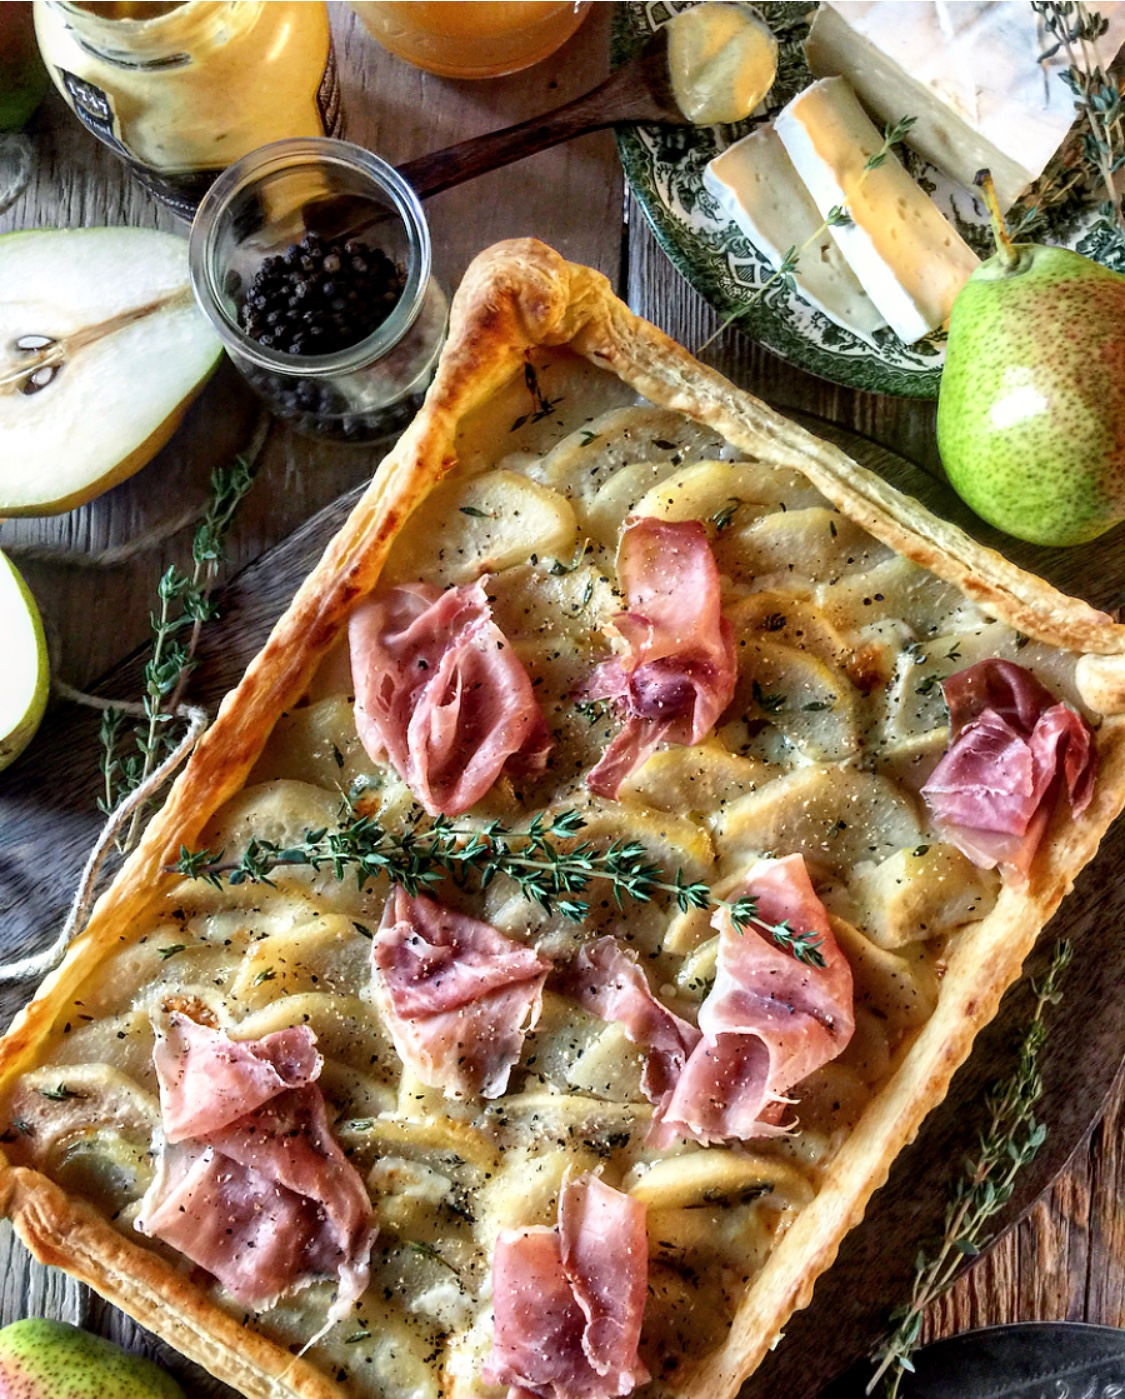 Savoury Pear, Brie and Prosciutto Tart